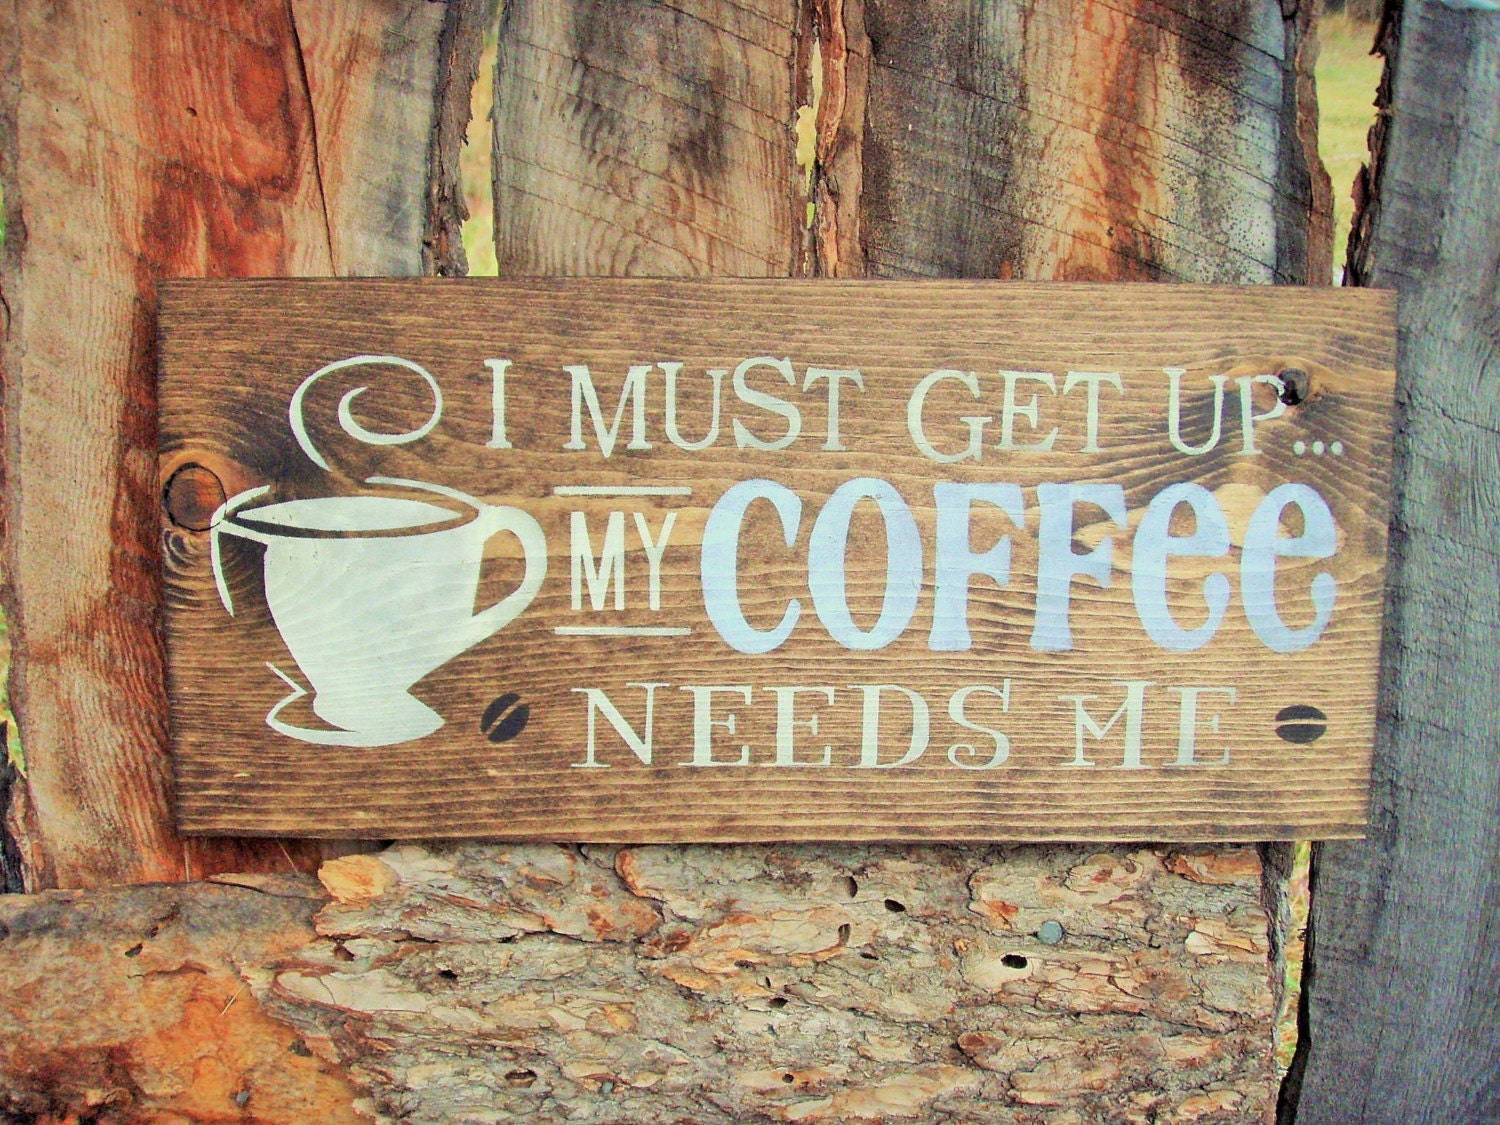 rustic home decor kitchen decor sign coffee sign coffee arrow